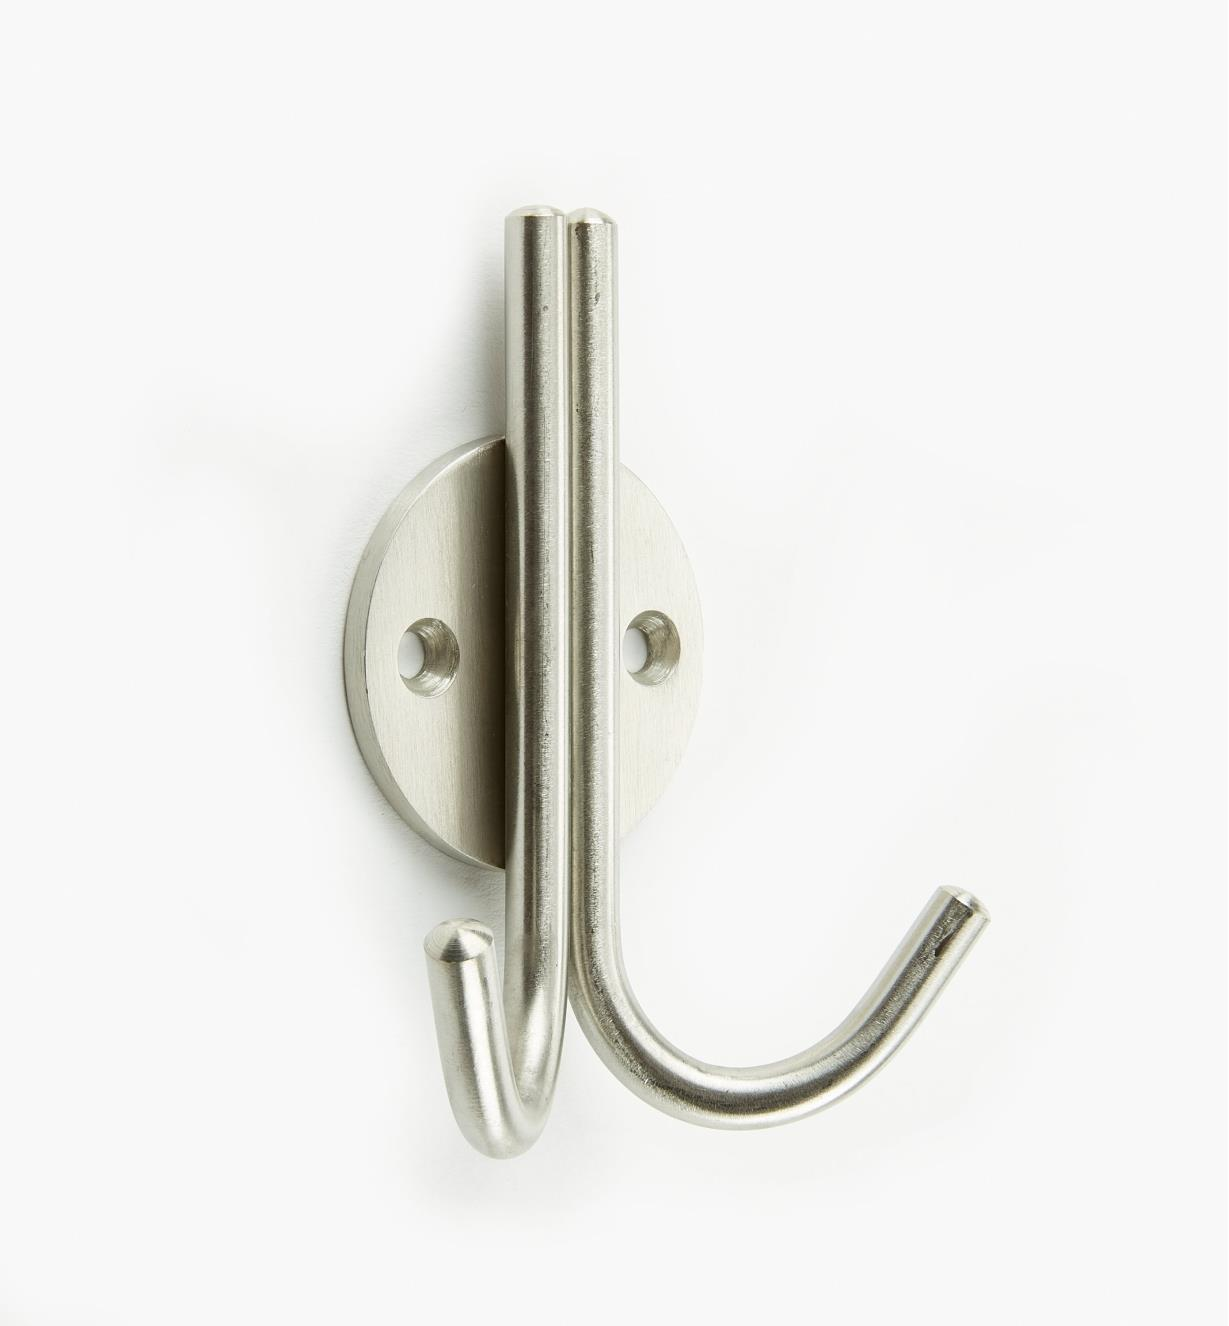 00S6020 - Stainless-Steel Double Hook